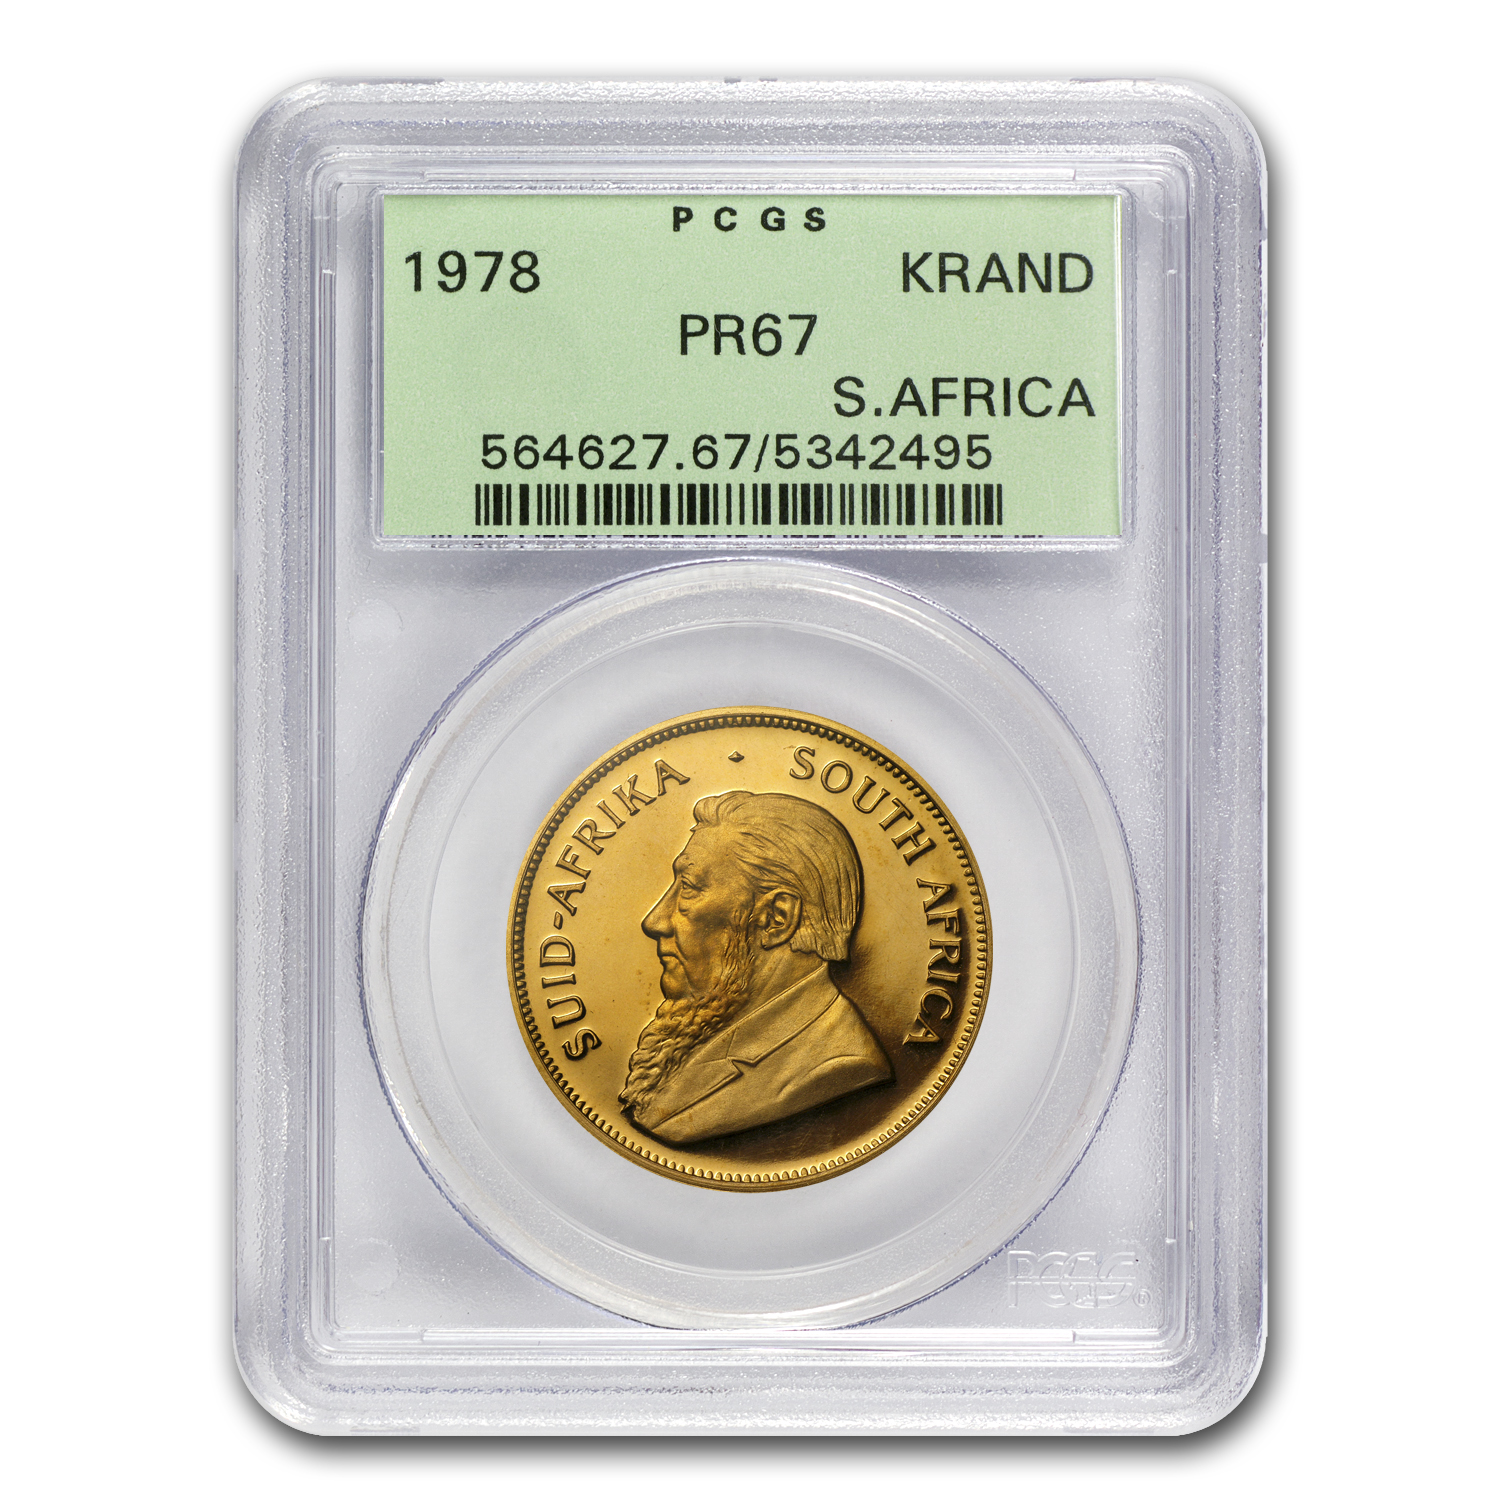 1978 South Africa 1 oz Gold Krugerrand PR-67 PCGS